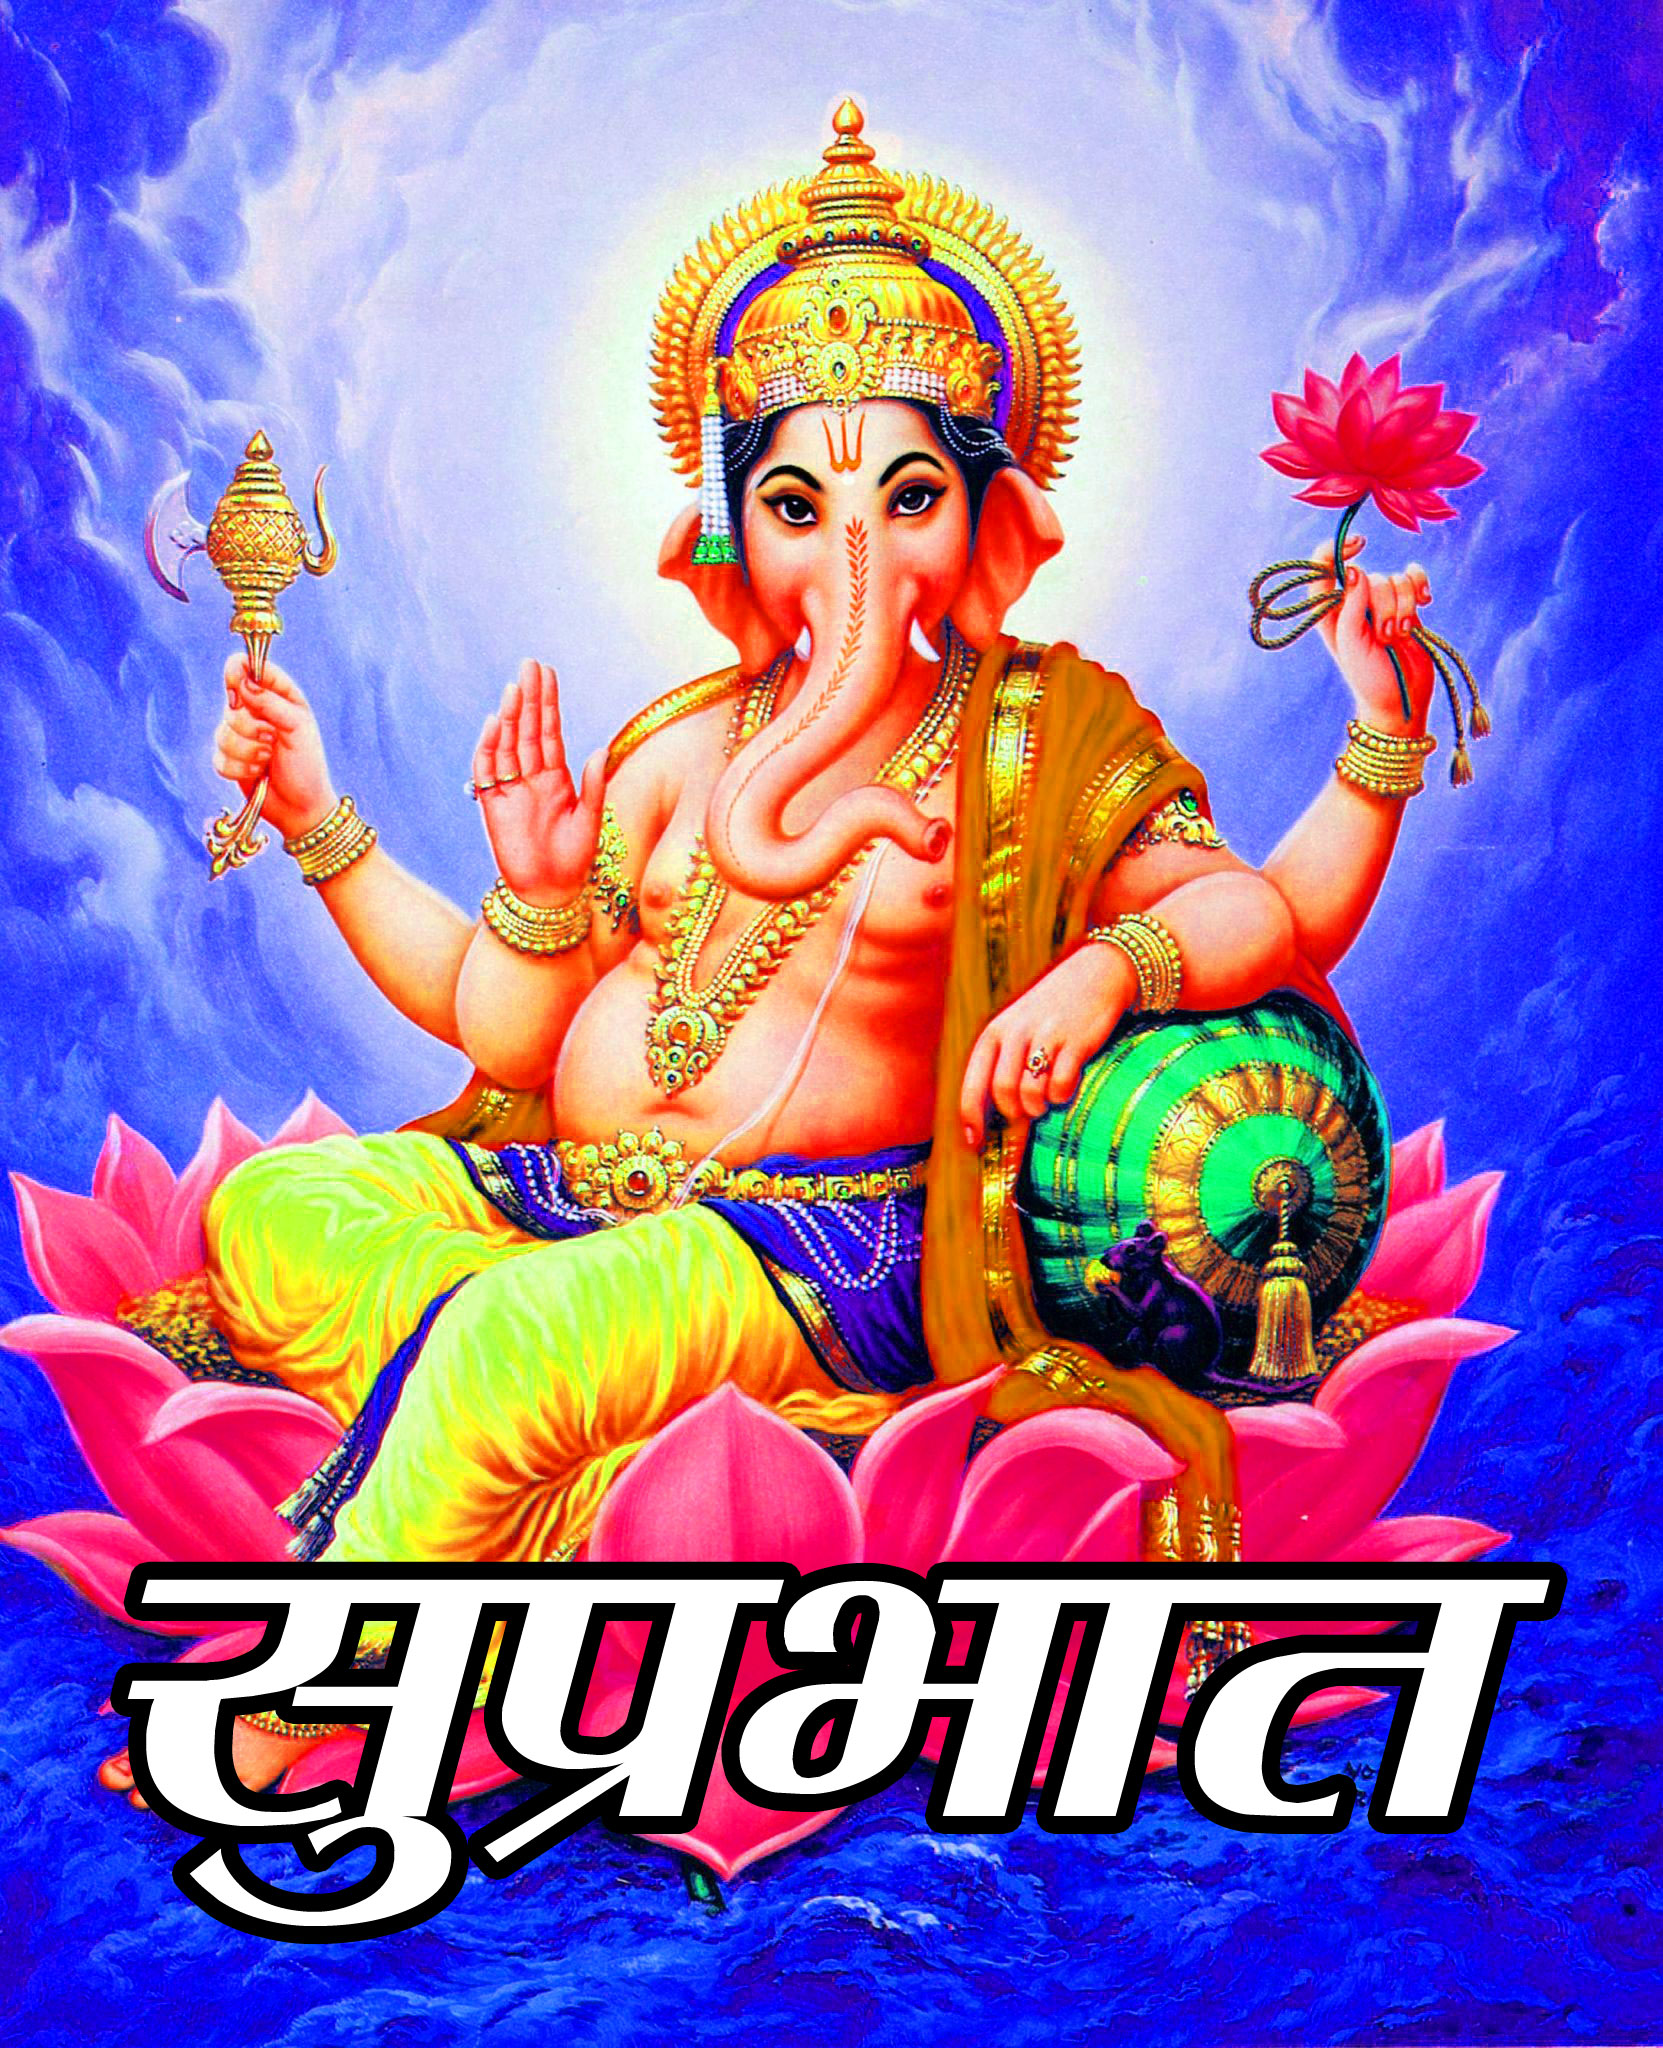 342+ Suprabhat Images For Whatsapp In Hindi Download